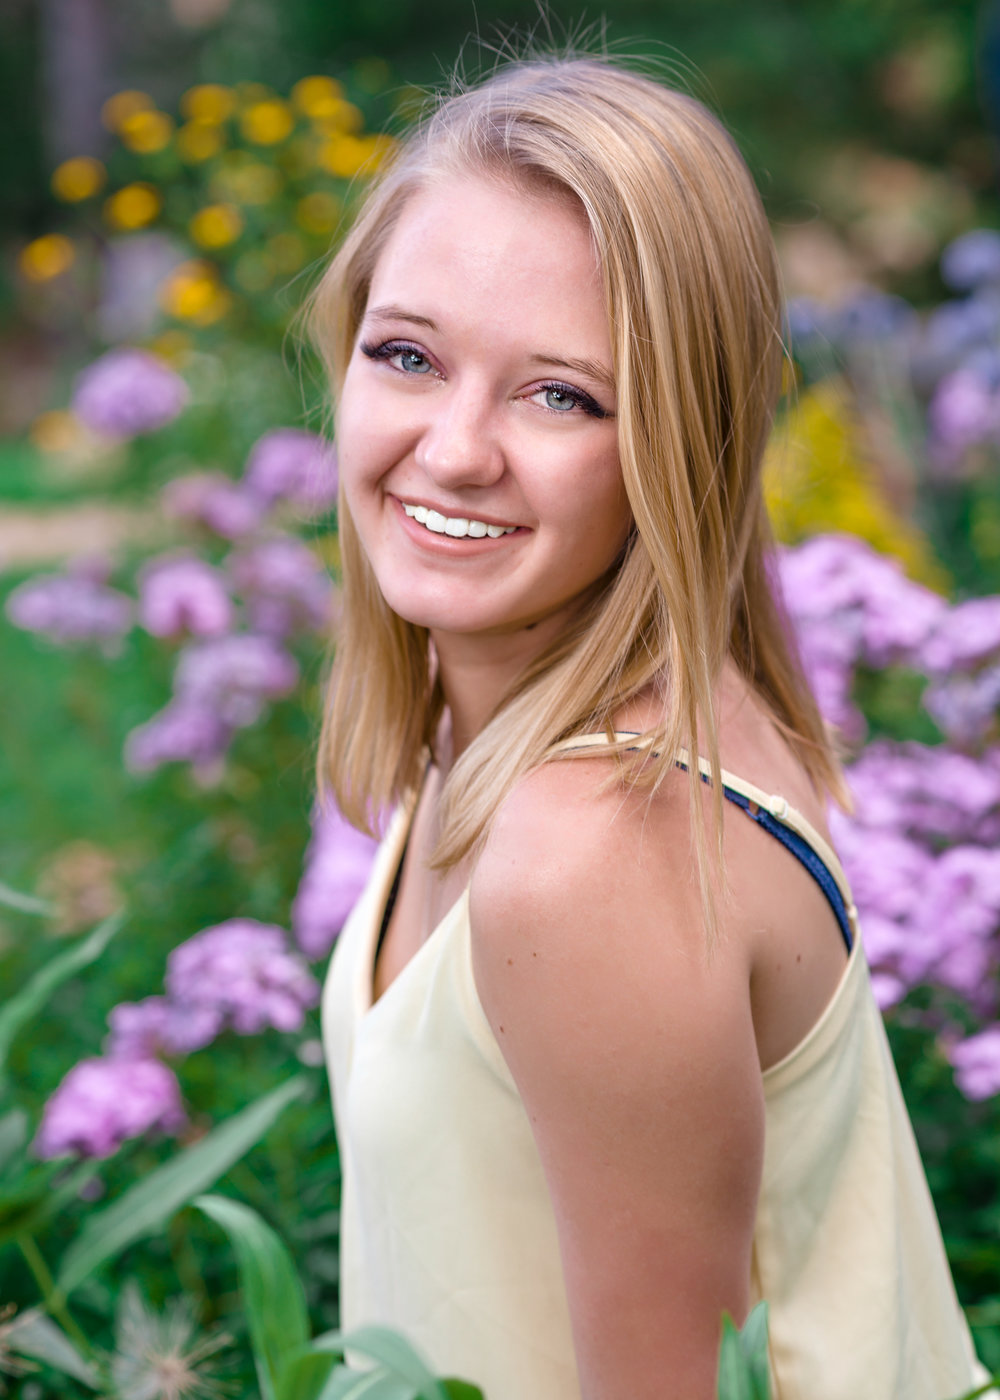 Kaitlyn N, Senior Shoot, 8_20_17, RWF, Lo Res JPEG for Social Media_D6X4606-Edit PC.jpg